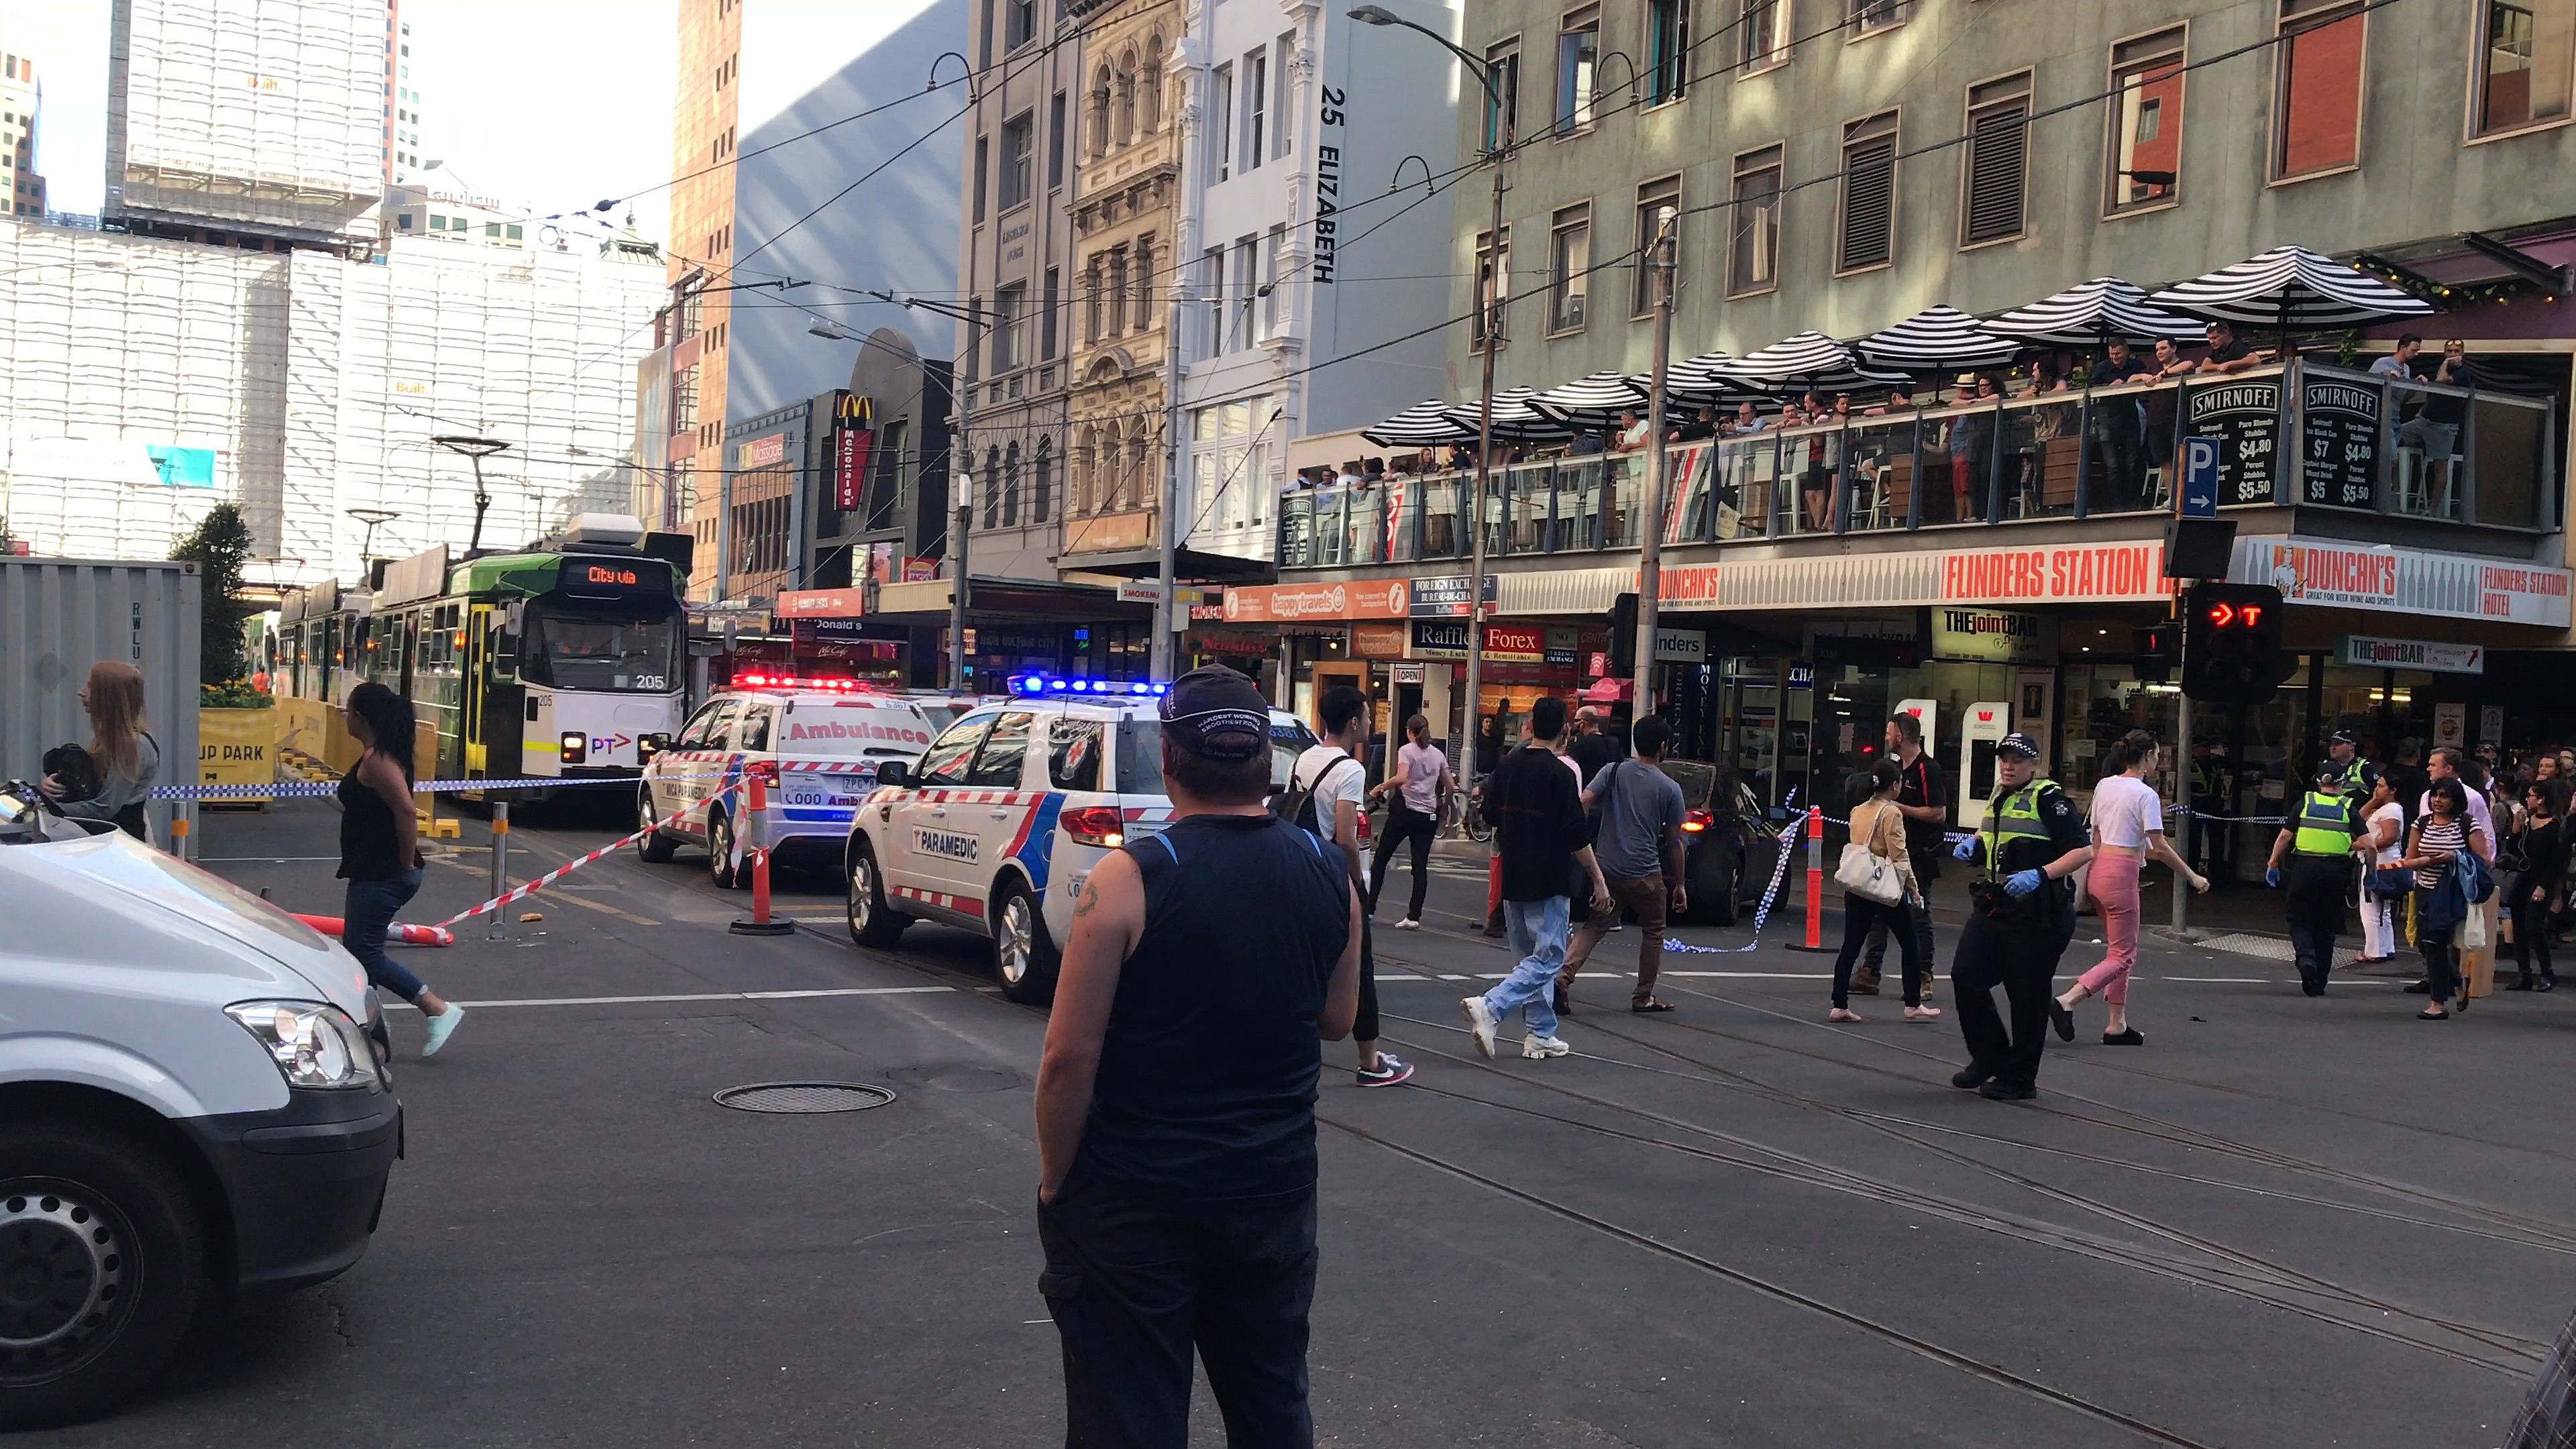 "<div class=""meta image-caption""><div class=""origin-logo origin-image none""><span>none</span></div><span class=""caption-text"">Pedestrians walk past as police and emergency services attend the scene of an incident involving a vehicle and pedestrians in Melbourne, Thursday, Dec. 21, 2017. (Kaitlyn Offer/AAP Image via AP)</span></div>"